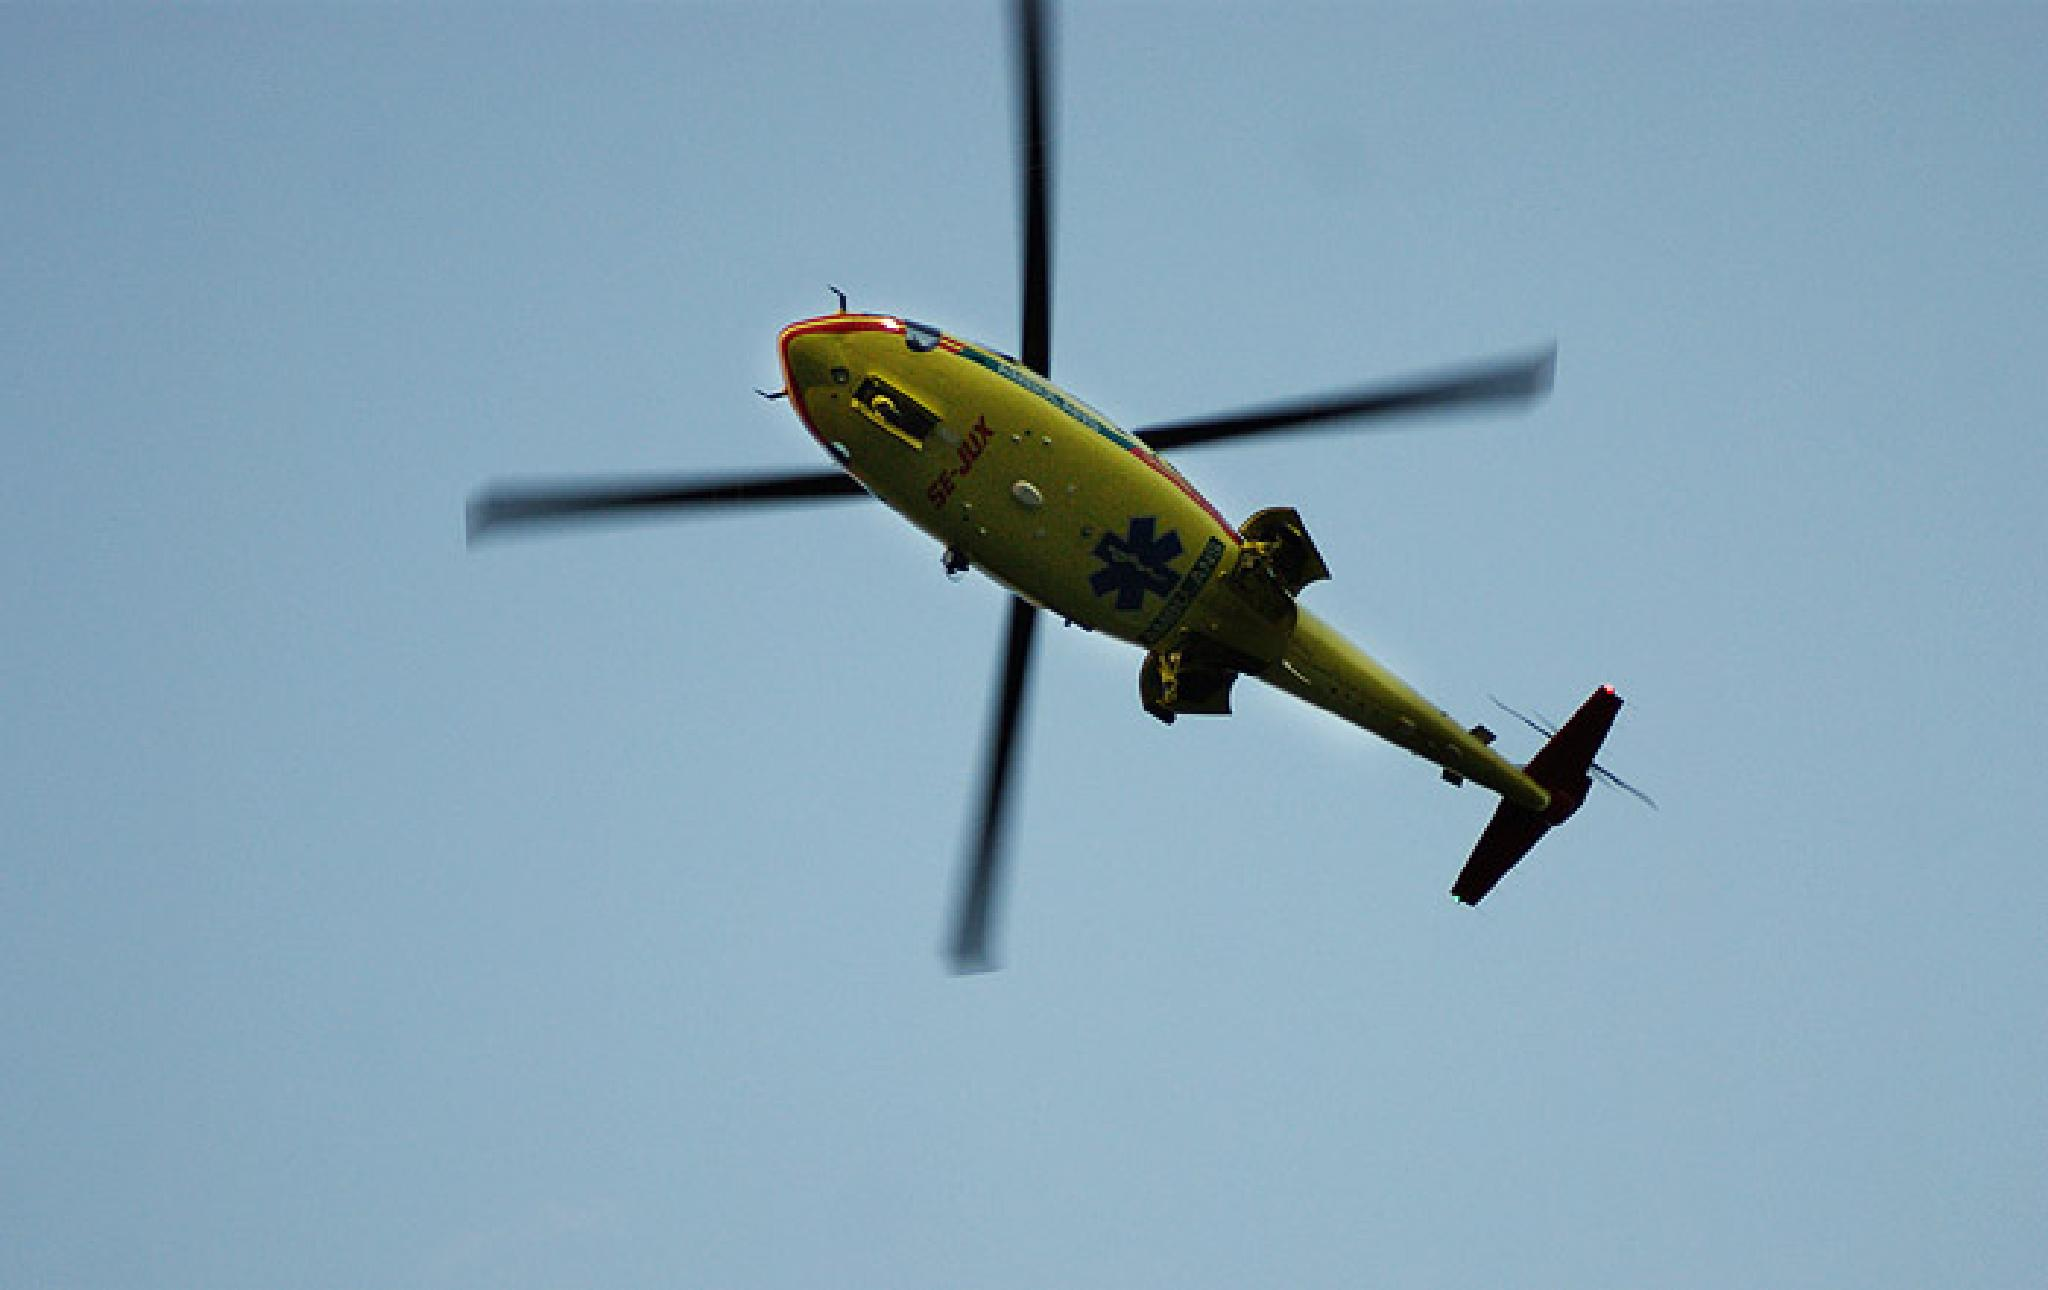 Helicopter by linnankarstrand